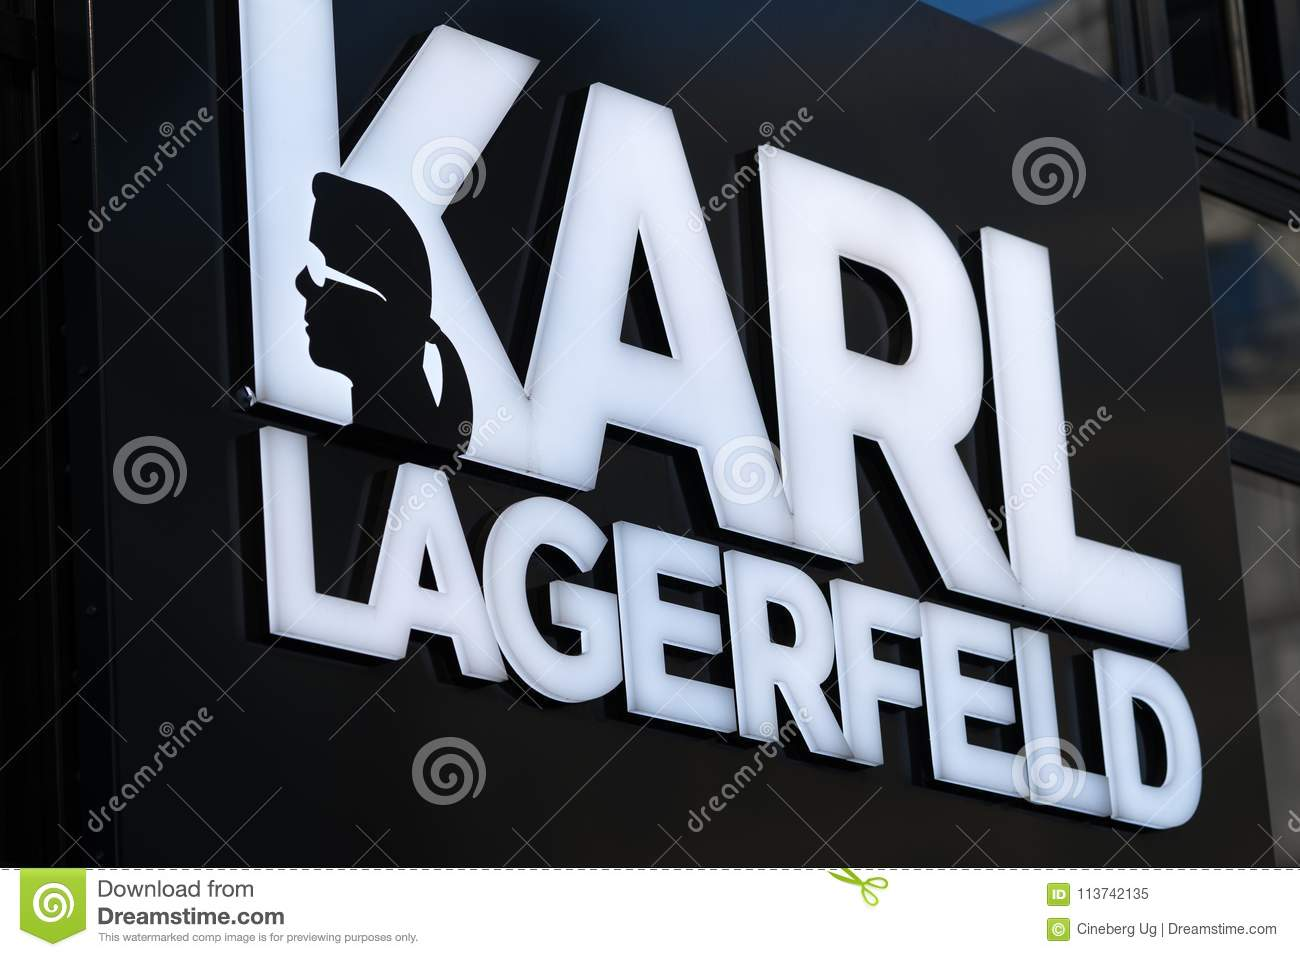 Karl Lagerfeld Sign Editorial Image Image Of Label 113742135